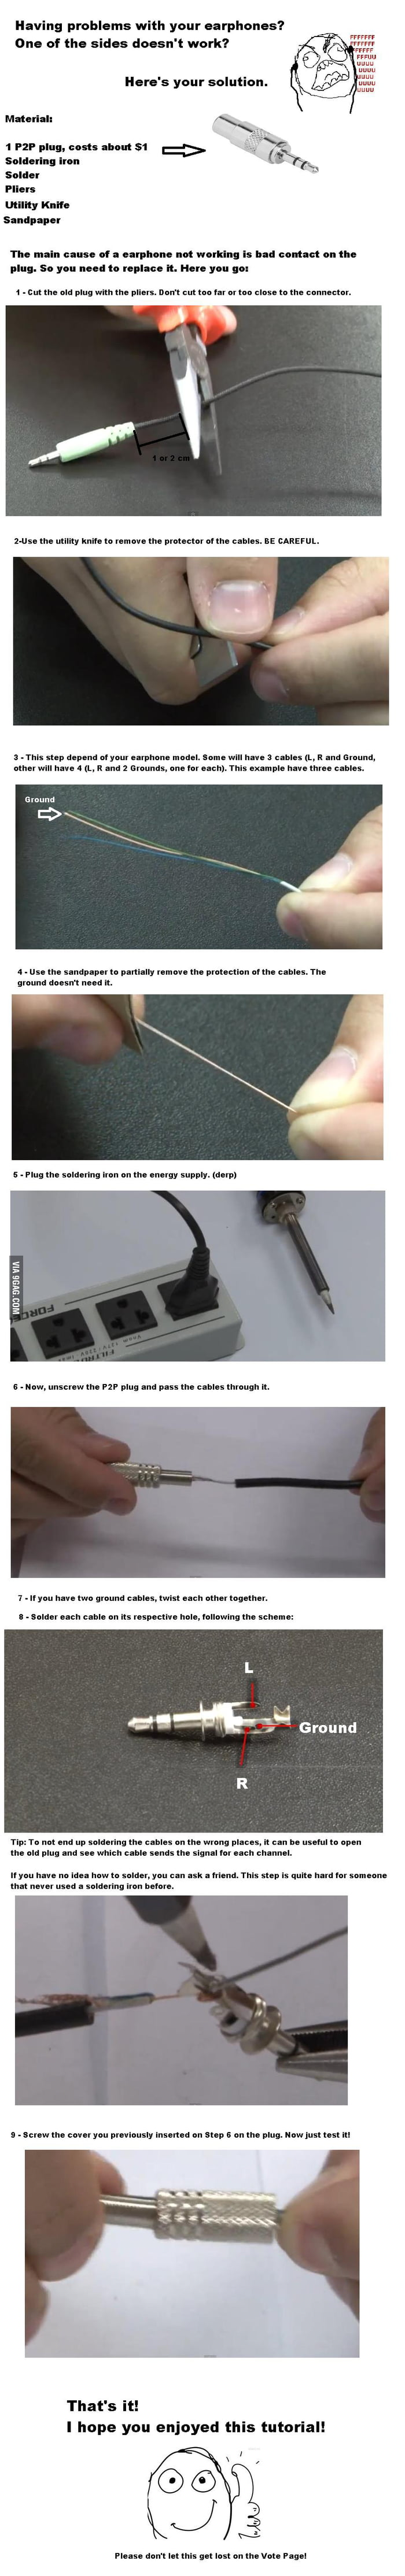 How to fix earphones